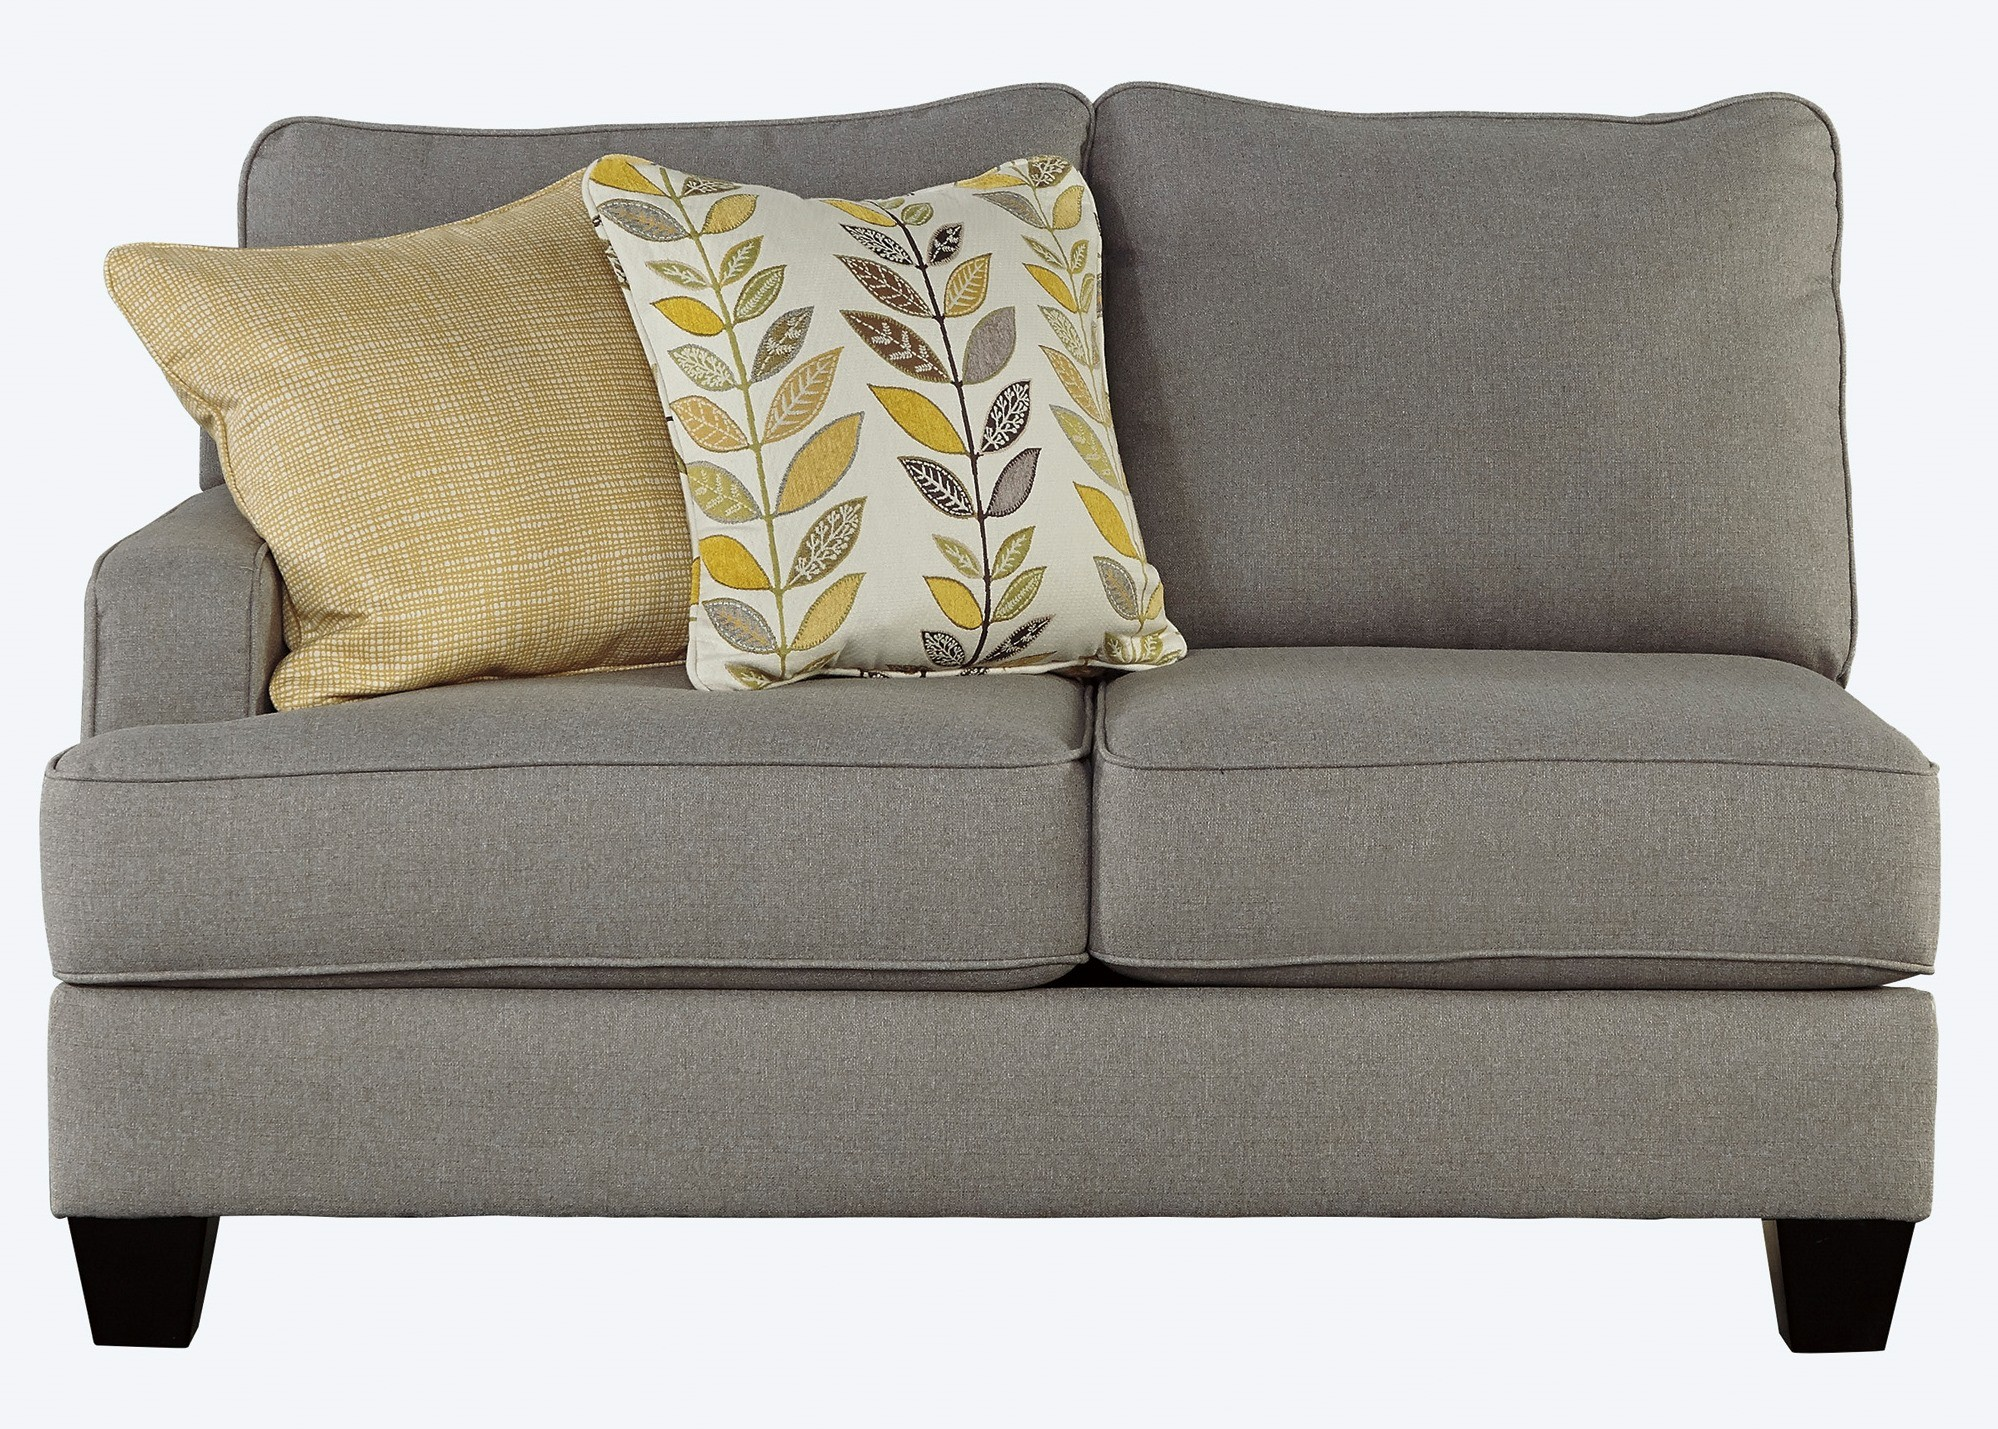 Chamberly Alloy Loveseat Sectional from Ashley